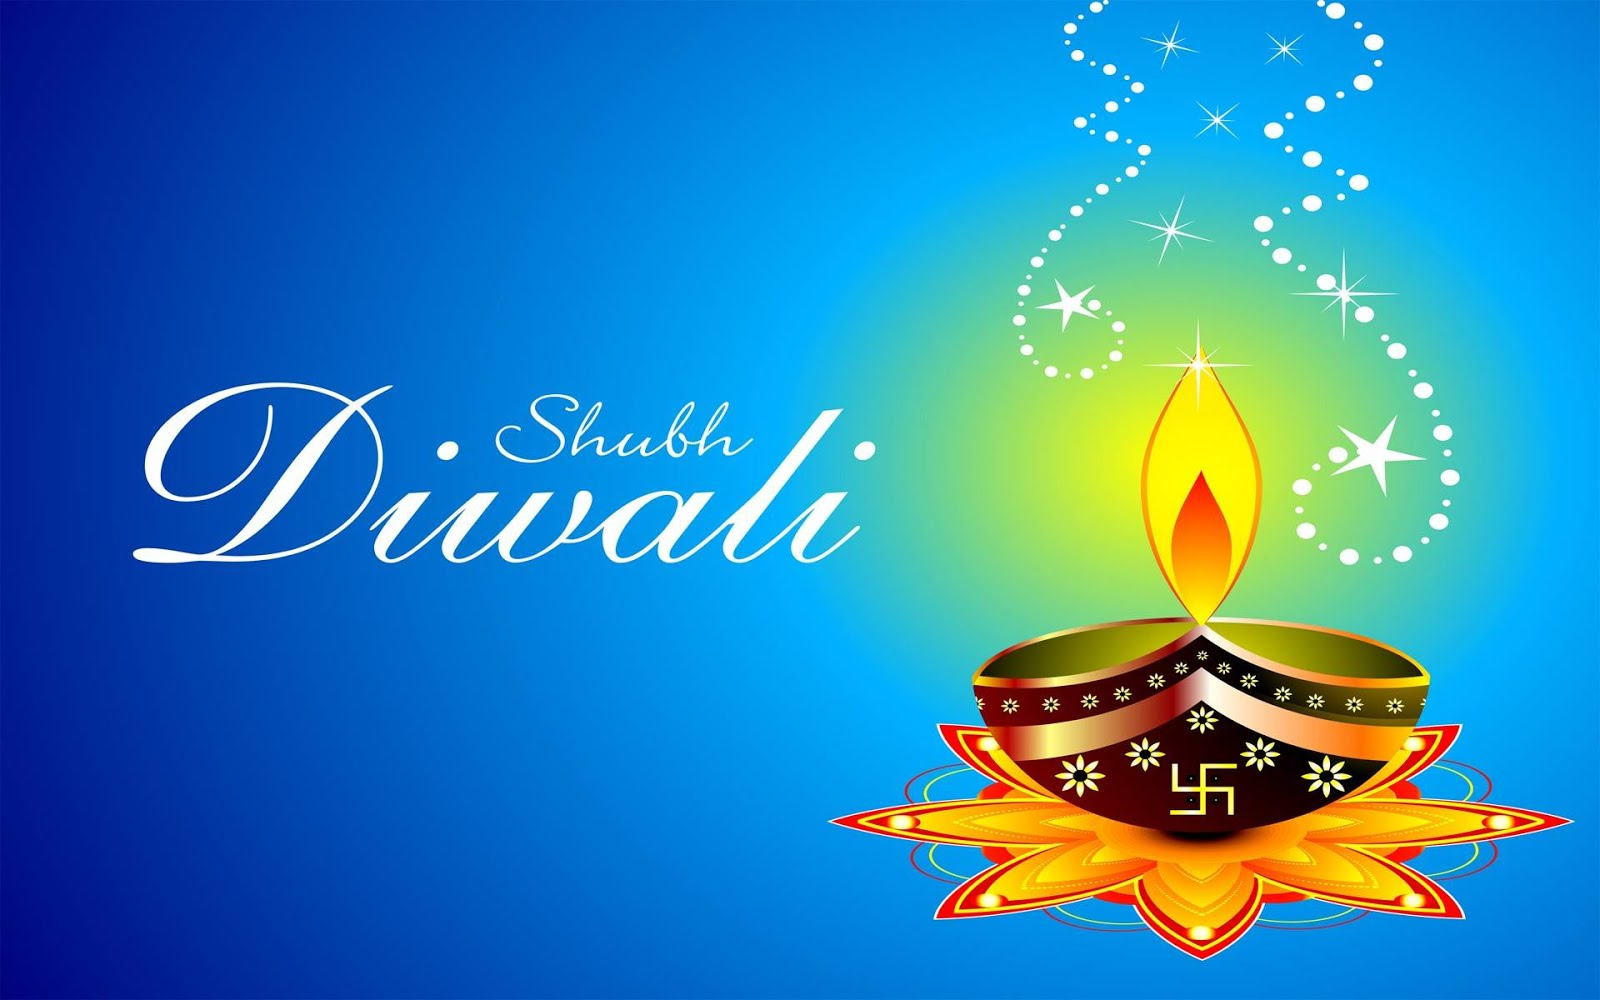 Happy deepavali diwali whatsapp video status songs whatsapp story happy diwali whatsapp video status m4hsunfo